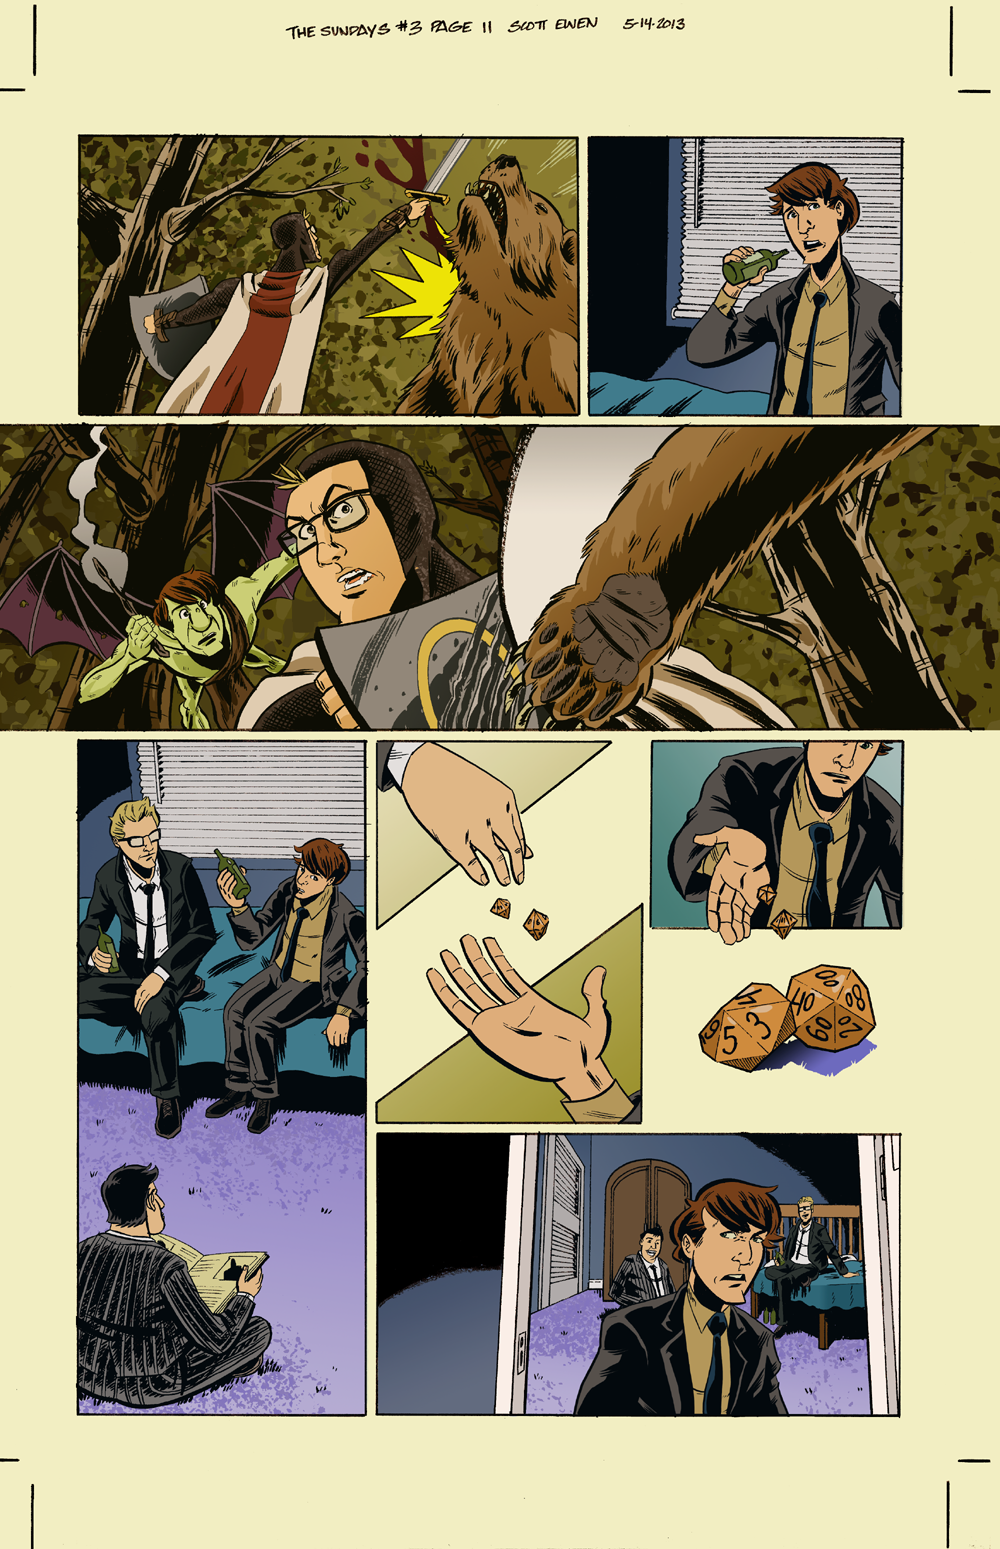 the_sundays__3_page_11_colors_by_scottewen-d663w0m.png